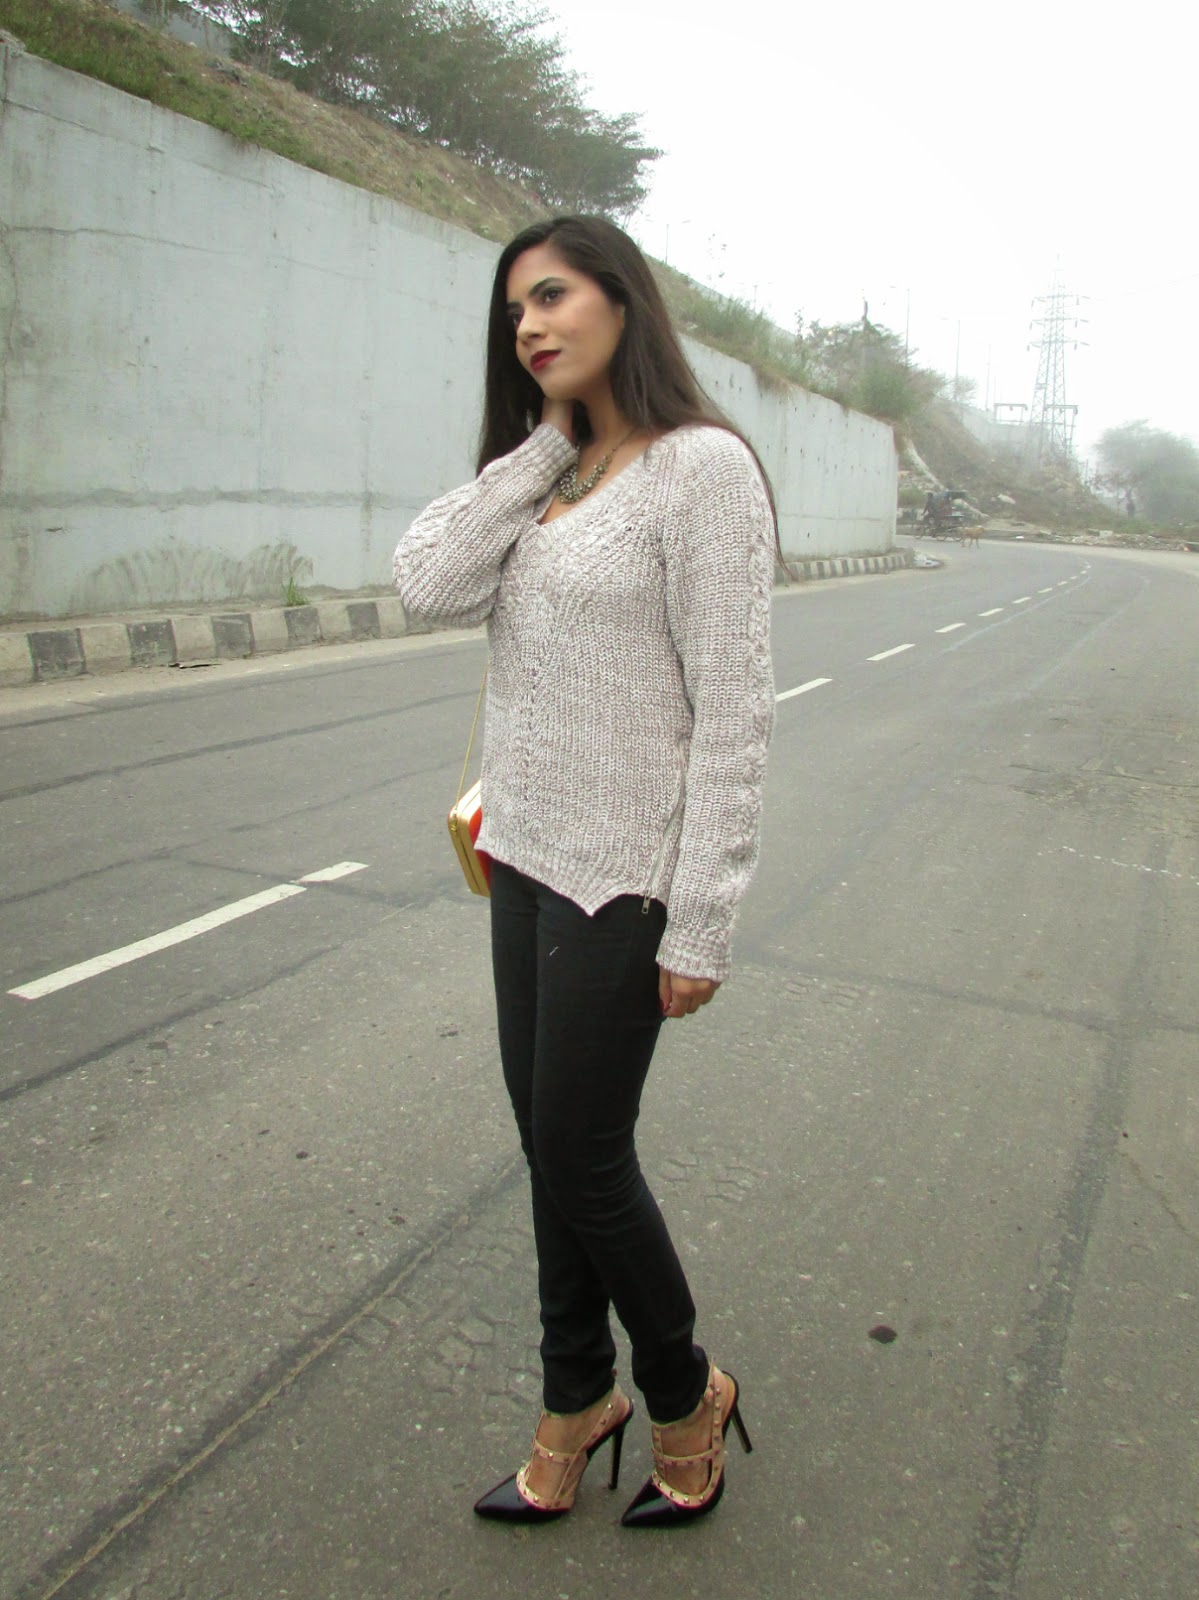 Long Sleeves Zipper Side Slit Knitwear, heavy knit sweater, pullover, warm pullover, winter trends 2015, how to style heavy sweater, india winter trends,peplu, floral , floral peplum , floral peplum top , frock top , peplum top with floral print, peplum floral , sweat heart neck line top , distressed,distressedjeans, distressedboyfriendjeans,boyfrien,boyfriendjeans,boyfriendjeanswithcutout,ripped,rippejeans, fashion , chcnova,ootd,chicnovareview , distressedjeans chicnova,rippedboyfriendjeans,distressedpants,howtostylerippedjeans,howtostyleboyfriendjeans,howtostylebaggyjeans,crochet , lace , summer, white , crochet top , lace top , white lace top , white crochet top , net , net top , white net top,Statement necklace, necklace, statement necklaces, big necklace, heavy necklaces , gold necklace, silver necklace, silver statement necklace, gold statement necklace, studded statement necklace , studded necklace, stone studded necklace, stone necklace, stove studded statement necklace, stone statement necklace, stone studded gold statement necklace, stone studded silver statement necklace, black stone necklace, black stone studded statement necklace, black stone necklace, black stone statement necklace, neon statement necklace, neon stone statement necklace, black and silver necklace, black and gold necklace, blank and silver statement necklace, black and gold statement necklace, silver jewellery, gold jewellery, stove jewellery, stone studded jewellery, imitation jewellery, artificial jewellery, junk jewellery, cheap jewellery ,chicnova Statement necklace, chicnova necklace, chicnova statement necklaces,chicnova big necklace, chicnova  heavy necklaces , chicnova gold necklace, chicnova silver necklace,  chicnova  statement necklace,chicnova  gold statement necklace,chicnova studded statement necklace , chicnova studded necklace, chicnova stone studded necklace, chicnova stone necklace, chicnova stove studded statement necklace, chicnova stone statement necklace, chicnova stone studded gold statement necklace, chicnova stone studded silver statement necklace, chicnova black stone necklace, chicnova black stone studded statement necklace, chicnova black stone necklace, chicnova black stone statement necklace, chicnova neon statement necklace, chicnova neon stone statement necklace, chicnova  black and silver necklace, chicnova black and gold necklace, chicnova black  and silver statement necklace, chicnova black and gold statement necklace, silver jewellery, chicnova gold jewellery, chicnova stove jewellery, chicnova stone studded jewellery, chicnova imitation jewellery, chicnova artificial jewellery, chicnova junk jewellery, chicnova cheap jewellery ,Cheap Statement necklace, Cheap necklace, Cheap statement necklaces,Cheap big necklace, Cheap heavy necklaces , Cheap gold necklace, Cheap silver necklace, Cheap silver statement necklace,Cheap gold statement necklace, Cheap studded statement necklace , Cheap studded necklace, Cheap stone studded necklace, Cheap stone necklace, Cheap stove studded statement necklace, Cheap stone statement necklace, Cheap stone studded gold statement necklace, Cheap stone studded silver statement necklace, Cheap black stone necklace, Cheap black stone studded statement necklace, Cheap black stone necklace, Cheap black stone statement necklace, Cheap neon statement necklace, Cheap neon stone statement necklace, Cheap black and silver necklace, Cheap black and gold necklace, Cheap black  and silver statement necklace, Cheap black and gold statement necklace, silver jewellery, Cheap gold jewellery, Cheap stove jewellery, Cheap stone studded jewellery, Cheap imitation jewellery, Cheap artificial jewellery, Cheap junk jewellery, Cheap cheap jewellery , Black pullover, black and grey pullover, black and white pullover, back cutout, back cutout pullover, back cutout sweater, back cutout jacket, back cutout top, back cutout tee, back cutout tee shirt, back cutout shirt, back cutout dress, back cutout trend, back cutout summer dress, back cutout spring dress, back cutout winter dress, High low pullover, High low sweater, High low jacket, High low top, High low tee, High low tee shirt, High low shirt, High low dress, High low trend, High low summer dress, High low spring dress, High low winter dress,chicnova Black pullover, chicnova black and grey pullover, chicnova black and white pullover, chicnova back cutout, chicnova back cutout pullover, chicnova back cutout sweater, chicnova  back cutout jacket, chicnova back cutout top, chicnova back cutout tee, chicnova back cutout tee shirt, chicnova back cutout shirt, chicnova back cutout dress, chicnova back cutout trend, chicnova back cutout summer dress, chicnova back cutout spring dress, chicnova back cutout winter dress, chicnova High low pullover, chicnova High low sweater, chicnova High low jacket, chicnova High low top, chicnova High low tee, ocrun High low tee shirt, chicnova High low shirt, chicnova High low dress, chicnova High low trend, chicnova High low summer dress, chicnova High low spring dress, chicnova High low winter dress, Cropped, cropped tee,cropped tee shirt , cropped shirt, cropped sweater, cropped pullover, cropped cardigan, cropped top, cropped tank top, Cheap Cropped, cheap cropped tee,cheap cropped tee shirt ,cheap  cropped shirt, cheap cropped sweater, cheap cropped pullover, cheap cropped cardigan,cheap  cropped top, cheap cropped tank top,banggood Cropped, chicnova cropped tee, chicnova cropped tee shirt , chicnova cropped shirt, chicnova cropped sweater, chicnova cropped pullover, chicnova cropped cardigan, chicnova cropped top, chicnova cropped  top, Winter Cropped, winter cropped tee, winter cropped tee shirt , winter cropped shirt, winter cropped sweater, winter cropped pullover, winter cropped cardigan, winter cropped top, winter cropped tank top,Leggings, winter leggings, warm leggings, winter warm leggings, fall leggings, fall warm leggings, tights, warm tights, winter tights, winter warm tights, fall tights, fall warm tights,chicnova leggings, chicnova tights, warm warm leggings, chicnova warm tights, chicnova winter warm tights, chicnova fall warm tights, woollen tights , woollen leggings, shopclues woollen tights, chicnova woollen leggings, woollen bottoms, chicnova woollen bottoms, chicnova woollen pants , woollen pants,  Christmas , Christmas leggings, Christmas tights, shopclues Christmas, shopclues Christmas clothes, clothes for Christmas , shopclues Christmas leggings, shopclues Christmas tights, shopclues warm Christmas leggings, shopclues warm Christmas  tights, shopclues snowflake leggings, snowflake leggings, snowflake tights, shopclues rain deer tights, shopclues rain deer leggings, ugly Christmas sweater, Christmas tree, Christmas clothes, Santa clause,Wishlist, clothes wishlist, chicnova wishlist, chicnova, chicnova.com, chicnova wishlist, autumn wishlist,chicnova ocrun wishlist, chicnova.com,autumn clothes wishlist, autumn shoes wishlist, autumn bags wishlist, autumn boots wishlist, autumn pullovers wishlist, autumn cardigans wishlist, autymn coats wishlist, chicnova clothes wishlist, chicnova bags wishlist, chicnova bags wishlist, chicnova boots wishlist, chicnova pullover wishlist, chicnovacardigans wishlist, chicnova autum clothes wishlist, winter clothes, wibter clothes wishlist, winter wishlist, wibter pullover wishlist, winter bags wishlist, winter boots wishlist, winter cardigans wishlist, winter leggings wishlist, chicnova winter clothes, chicnovaautumn clothes, chicnova winter collection, chicnova autumn collection,Cheap clothes online,cheap dresses online, cheap jumpsuites online, cheap leggings online, cheap shoes online, cheap wedges online , cheap skirts online, cheap jewellery online, cheap jackets online, cheap jeans online, cheap maxi online, cheap makeup online, cheap cardigans online, cheap accessories online, cheap coats online,cheap brushes online,cheap tops online, chines clothes online, Chinese clothes,Chinese jewellery ,Chinese jewellery online,Chinese heels online,Chinese electronics online,Chinese garments,Chinese garments online,Chinese products,Chinese products online,Chinese accessories online,Chinese inline clothing shop,Chinese online shop,Chinese online shoes shop,Chinese online jewellery shop,Chinese cheap clothes online,Chinese  clothes shop online, korean online shop,korean garments,korean makeup,korean makeup shop,korean makeup online,korean online clothes,korean online shop,korean clothes shop online,korean dresses online,korean dresses online,cheap Chinese clothes,cheap korean clothes,cheap Chinese makeup,cheap korean makeup,cheap korean shopping ,cheap Chinese shopping,cheap Chinese online shopping,cheap korean online shopping,cheap Chinese shopping website,cheap korean shopping website, cheap online shopping,online shopping,how to shop online ,how to shop clothes online,how to shop shoes online,how to shop jewellery online,how to shop mens clothes online, mens shopping online,boys shopping online,boys jewellery online,mens online shopping,mens online shopping website,best Chinese shopping website, Chinese online shopping website for men,best online shopping website for women,best korean online shopping,best korean online shopping website,korean fashion,korean fashion for women,korean fashion for men,korean fashion for girls,korean fashion for boys,best chinese online shopping,best chinese shopping website,best chinese online shopping website,wholesale chinese shopping website,wholesale shopping website,chinese wholesale shopping online,chinese wholesale shopping, chinese online shopping on wholesale prices, clothes on wholesale prices,cholthes on wholesake prices,clothes online on wholesales prices,online shopping, online clothes shopping, online jewelry shopping,how to shop online, how to shop clothes online, how to shop earrings online, how to shop,skirts online, dresses online,jeans online, shorts online, tops online, blouses online,shop tops online, shop blouses online, shop skirts online, shop dresses online, shop botoms online, shop summer dresses online, shop bracelets online, shop earrings online, shop necklace online, shop rings online, shop highy low skirts online, shop sexy dresses onle, men's clothes online, men's shirts online,men's jeans online, mens.s jackets online, mens sweaters online, mens clothes, winter coats online, sweaters online, cardigens online,beauty , fashion,beauty and fashion,beauty blog, fashion blog , indian beauty blog,indian fashion blog, beauty and fashion blog, indian beauty and fashion blog, indian bloggers, indian beauty bloggers, indian fashion bloggers,indian bloggers online, top 10 indian bloggers, top indian bloggers,top 10 fashion bloggers, indian bloggers on blogspot,home remedies, how to,chicnova online shopping,chicnova online shopping review,chicnova.com review,banggood online clothing store,chicnova online chinese store,chicnova online shopping,chicnova  site review,chicnova.com site review, chicnova Chines fashion, chicnova , chicnova.com, chicnova clothing, chicnova dresses, chicnovashoes, chicnova accessories,chicnova men cloths ,chicnovamakeup, chicnova helth products,chicnova Chinese online shopping, chicnova Chinese store, chicnova online chinese shopping, chicnova lchinese shopping online,chicnova, chicnova dresses, chicnova clothes, chicnova garments, chicnova clothes, chicnova skirts, chicnova pants, chicnova tops, chicnova cardigans, chicnova leggings, chicnova fashion , chicnova clothes fashion, banggood footwear, chicnova footwear, chicnova jewellery, ocrun fashion jewellery, chicnova rings, ocrun necklace, chicnova bracelets, chicnova earings,Autumn, fashion, banggood, wishlist,Winter,fall, fall abd winter, winter clothes , fall clothes, fall and winter clothes, fall jacket, winter jacket, fall and winter jacket, fall blazer, winter blazer, fall and winter blazer, fall coat , winter coat, falland winter coat, fall coverup, winter coverup, fall and winter coverup, outerwear, coat , jacket, blazer, fall outerwear, winter outerwear, fall and winter outerwear, woolen clothes, wollen coat, woolen blazer, woolen jacket, woolen outerwear, warm outerwear, warm jacket, warm coat, warm blazer, warm sweater, coat , white coat, white blazer, white coat, white woolen blazer, white coverup, white woolens, chicnova online shopping review,chicnova.com review,chicnova online clothing store,chicnova online chinese store,chicnova a online shopping,chicnova site review, chicnova.com site review, chicnova Chines fashion, chicnova , chicnova.com, chicnova clothing, chicnova dresses, chicnova shoes, chicnova accessories,chicnova men cloths ,chicnova makeup, ocrun helth products,chicnova chinese online shopping, chicnova Chinese store, chicnova online chinese shopping, chicnova chinese shopping online,chicnova, ocrun dresses, chicnova clothes, ocrun garments, chicnova clothes, chicnova skirts, chicnova pants, chicnova tops, chicnova cardigans, chicnova leggings, chicnova fashion , chicnova clothes fashion, banggood footwear, chicnovaa fashion footwear, chicnova jewellery, chicnova fashion jewellery, chicnova rings, chicnova necklace, ocrun bracelets, chicnova earings,latest fashion trends online, online shopping, online shopping in india, online shopping in india from america, best online shopping store , best fashion clothing store, best online fashion clothing store, best online jewellery store, best online footwear store, best online store, beat online store for clothes, best online store for footwear, best online store for jewellery, best online store for dresses, worldwide shipping free, free shipping worldwide, online store with free shipping worldwide,best online store with worldwide shipping free,low shipping cost, low shipping cost for shipping to india, low shipping cost for shipping to asia, low shipping cost for shipping to korea,Friendship day , friendship's day, happy friendship's day, friendship day outfit, friendship's day outfit, how to wear floral shorts, floral shorts, styling floral shorts, how to style floral shorts, how to wear shorts, how to style shorts, how to style style denim shorts, how to wear denim shorts,how to wear printed shorts, how to style printed shorts, printed shorts, denim shorts, how to style black shorts, how to wear black shorts, how to wear black shorts with black T-shirts, how to wear black T-shirt, how to style a black T-shirt, how to wear a plain black T-shirt, how to style black T-shirt,how to wear shorts and T-shirt, what to wear with floral shorts, what to wear with black floral shorts,how to wear all black outfit, what to wear on friendship day, what to wear on a date, what to wear on a lunch date, what to wear on lunch, what to wear to a friends house, what to wear on a friends get together, what to wear on friends coffee date , what to wear for coffee,beauty,Pink, pink pullover, pink sweater, pink jumpsuit, pink sweatshirt, neon pink, neon pink sweater, neon pink pullover, neon pink jumpsuit , neon pink cardigan, cardigan , pink cardigan, sweater, jumper, jumpsuit, pink jumper, neon pink jumper, pink jacket, neon pink jacket, winter clothes, oversized coat, oversized winter clothes, oversized pink coat, oversized coat, oversized jacket, chicnova pink, chicnova  pink sweater, chicnova pink jacket, chicnova pink cardigan, chicnova pink coat, chicnova pink jumper, chicnova neon pink, chicnova neon pink jacket, chicnova neon pink coat, chicnova neon pink sweater, chicnova neon pink jumper, chicnova neon pink pullover, pink pullover, neon pink pullover,fur,furcoat,furjacket,furblazer,fur pullover,fur cardigan,front open fur coat,front open fur jacket,front open fur blazer,front open fur pullover,front open fur cardigan,real fur, real fur coat,real fur jacket,real fur blazer,real fur pullover,real fur cardigan, soft fur,soft fur coat,soft fur jacket,soft furblazer,soft fur pullover,sof fur cardigan, white fur,white fur coat,white fur jacket,white fur blazer, white fur pullover, white fur cardigan,trench, trench coat, trench coat online, trench coat india, trench coat online India, trench cost price, trench coat price online, trench coat online price, cheap trench coat, cheap trench coat online, cheap trench coat india, cheap trench coat online India, cheap trench coat , Chinese trench coat, Chinese coat, cheap Chinese trench coat, Korean coat, Korean trench coat, British coat, British trench coat, British trench coat online, British trench coat online, New York trench coat, New York trench coat online, cheap new your trench coat, American trench coat, American trench coat online, cheap American trench coat, low price trench coat, low price trench coat online , low price trench coat online india, low price trench coat india, chicnova trench, banggood trench coat, chicnova trench coat online, chicnova trench coat india, chicnova trench coat online India, chicnova trench cost price,chicnova trench coat price online, chicnova trench coat online price, chicnova cheap trench coat,  chicnova trench coat online, chicnova cheap trench coat india, chicnova cheap trench coat online India, chicnova cheap trench coat , chicnovaa Chinese trench coat, ocrun Chinese coat, chicnova cheap Chinese trench coat, chicnova Korean coat, chicnova Korean trench coat, chicnova British coat, chicnova British trench coat, chicnova British trench coat online, chicnova British trench coat online, chicnova New York trench coat, chicnova New York trench coat online, chicnova cheap new your trench coat, chicnova American trench coat, chicnova American trench coat online, chicnova cheap American trench coat, chicnova low price trench coat, chicnova low price trench coat online , chicnova low price trench coat online india, chicnova low price trench coat india, how to wear trench coat, how to wear trench, how to style trench coat, how to style coats, how to style long coats, how to style winter coats, how to style winter trench coats, how to style winter long coats, how to style warm coats, how to style beige coat, how to style beige long coat, how to style beige trench coat, how to style beige coat, beige coat, beige long coat, beige long coat, beige frock coat, beige double breasted coat, double breasted coat, how to style frock coat, how to style double breasted coat, how to wear beige trench coat,how to wear beige coat, how to wear beige long coat, how to wear beige frock coat, how to wear beige double button coat, how to wear beige double breat coat, double button coat, what us trench coat, uses of trench coat, what is frock coat, uses of frock coat, what is long coat, uses of long coat, what is double breat coat, uses of double breasted coat, what is bouton up coat, uses of button up coat, what is double button coat, uses of double button coat, velvet leggings, velvet tights, velvet bottoms, embroided velvet leggings, embroided velvet tights, pattern tights, velvet pattern tights, floral tights , floral velvet tights, velvet floral tights, embroided  velvet leggings, pattern leggings , velvet pattern leggings , floral leggings , floral velvet leggings, velvet floral leggings ,eyeboxs velvet leggings, chicnova velvet tights, chicnova velvet bottoms,chicnova embroided velvet leggings,chicnova embroided velvet tights, chicnova pattern tights, chicnova velvet pattern tights, chicnova floral tights , chicnova floral velvet tights, chicnova velvet floral tights, chicnova embroided  velvet leggings, chicnova  pattern leggings , chicnova velvet pattern leggings , chicnova floral leggings ,chicnova floral velvet leggings, chicnova velvet floral leggings ,chicnova studded heels,  studded heels , stud heels, valentinos , valentino heels, valentine shoes, valentino studded shoes, valentino studded heels, valentino studded sandels, black valentino, valentino footwear ,shoe sale , valentino look alikes, cartoon tee , cartoon , cartoon print , cartoon pattern , cartoon shirt , cartoon top , cartoon print top , cartoon print shirt, cartoon paint shorts , cartoon print tee